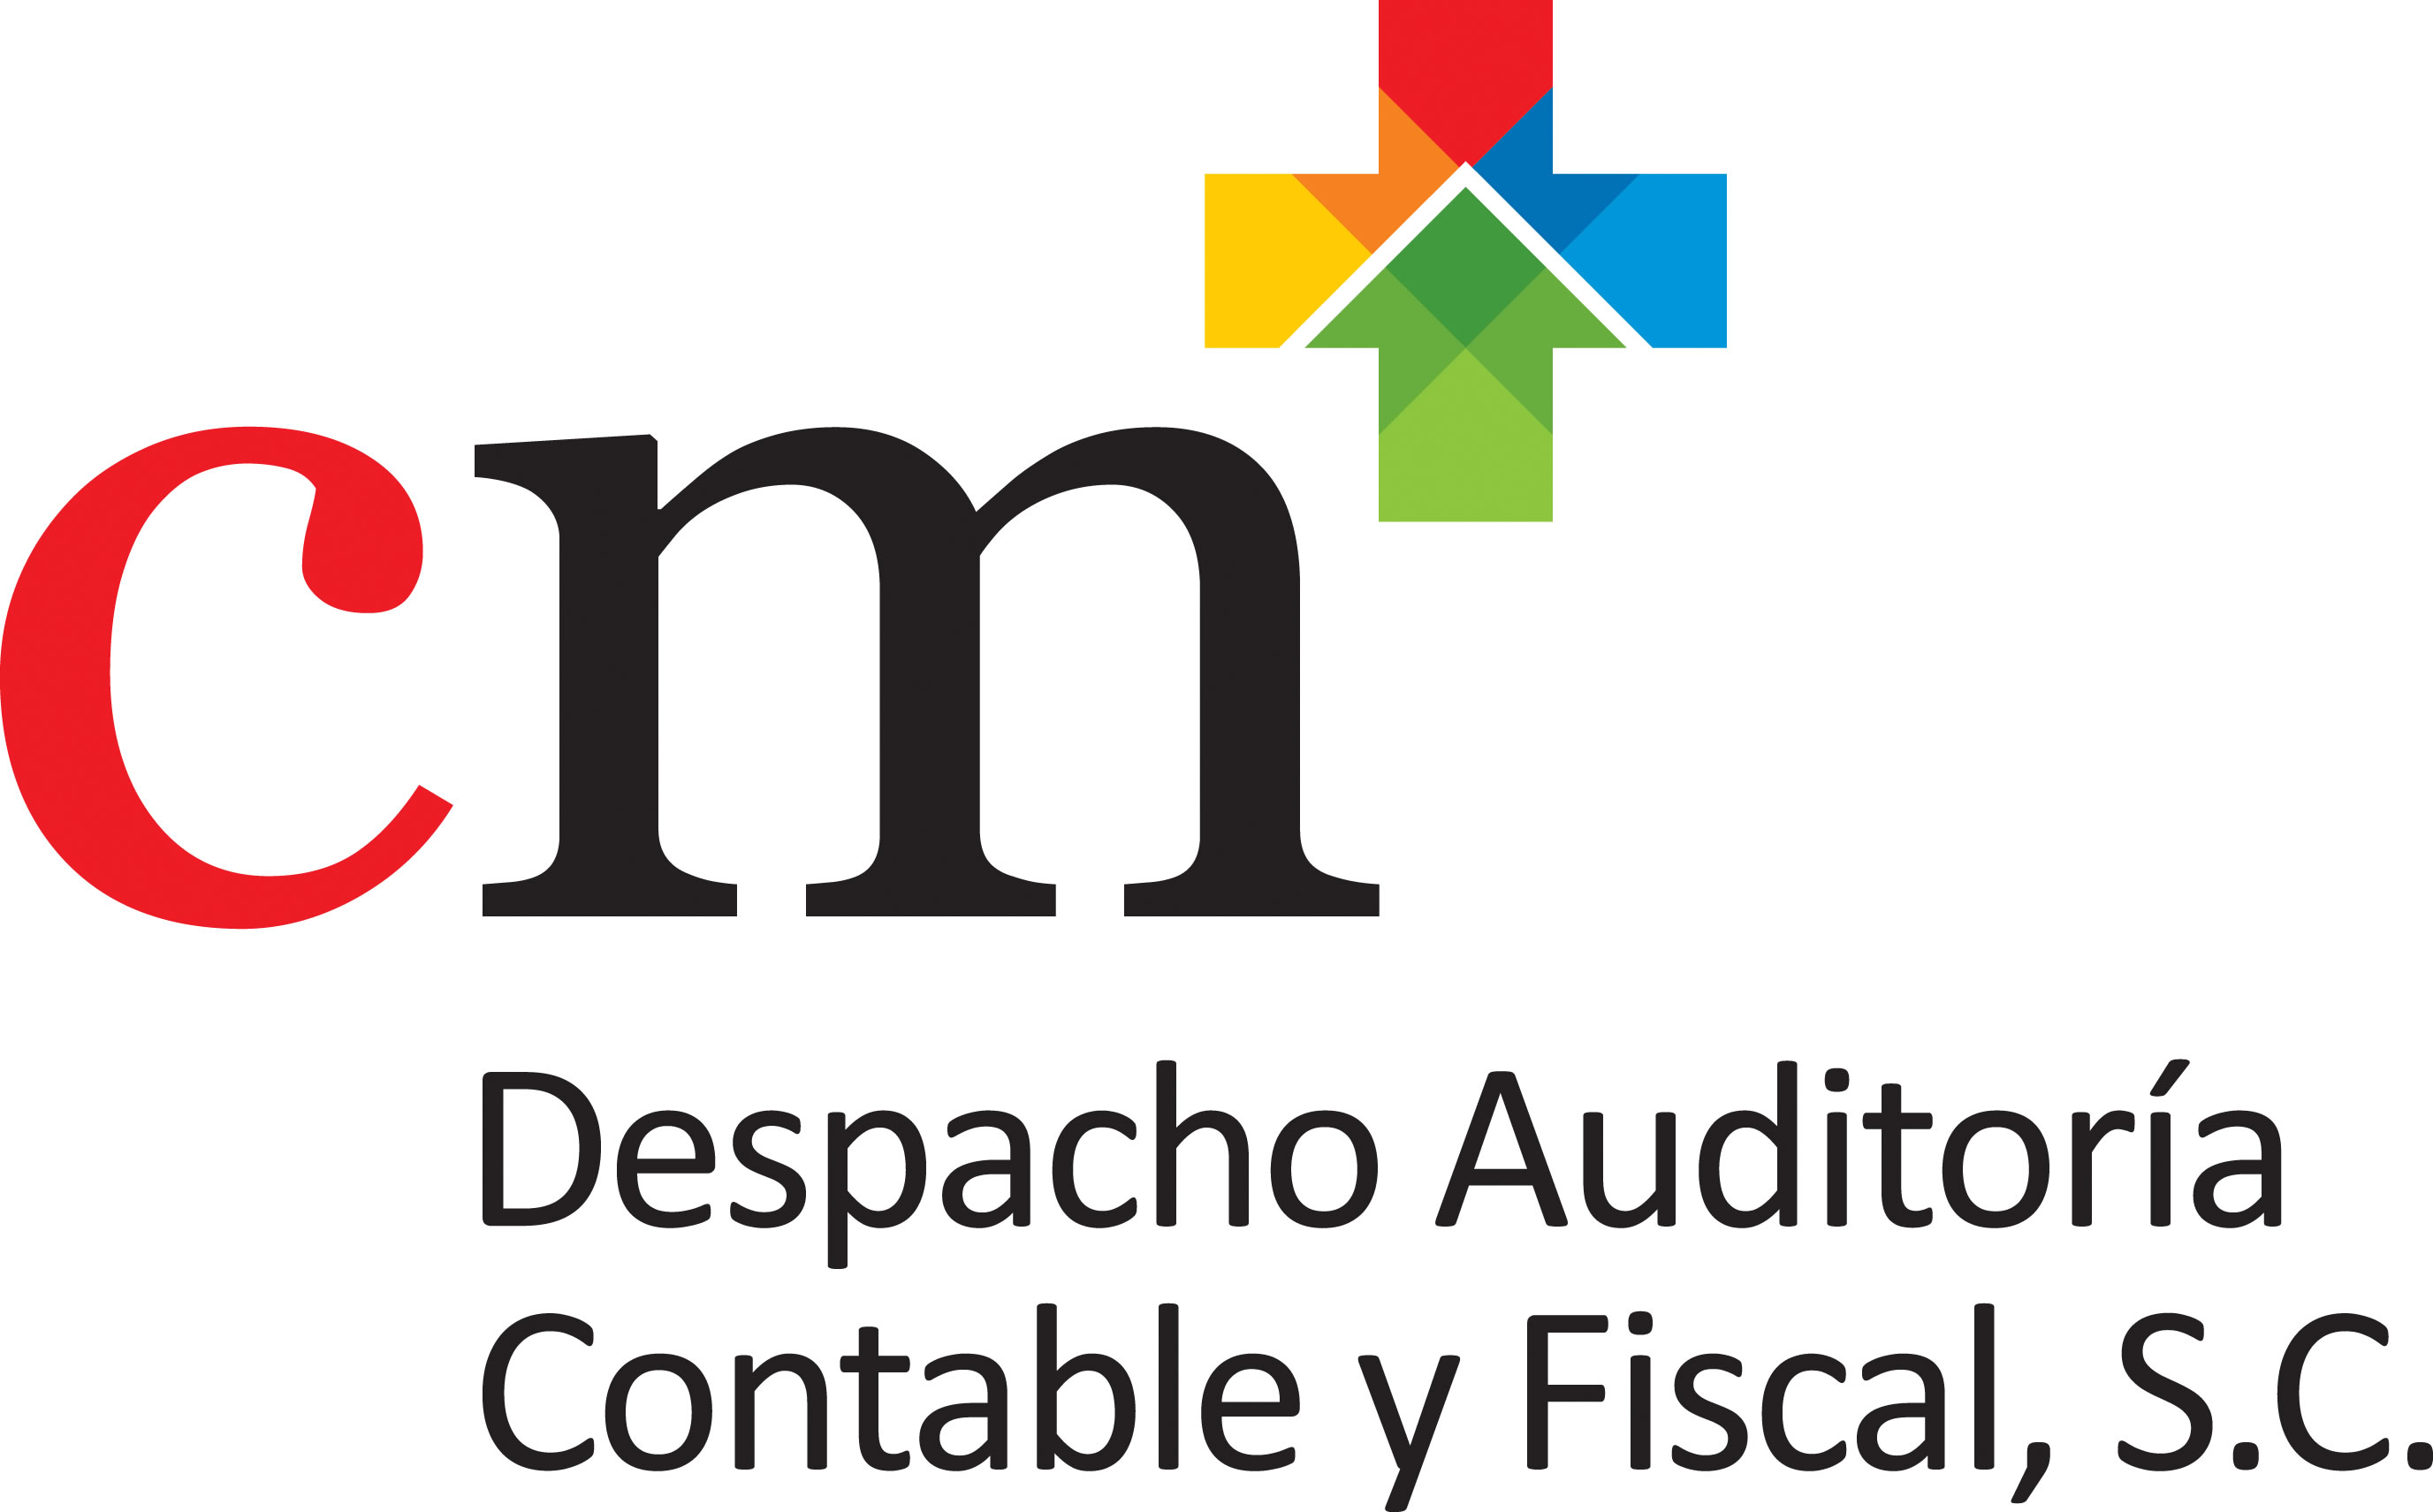 Despacho Fiscal Cm Despacho Auditoria Contable Y Fiscal Cm Despacho